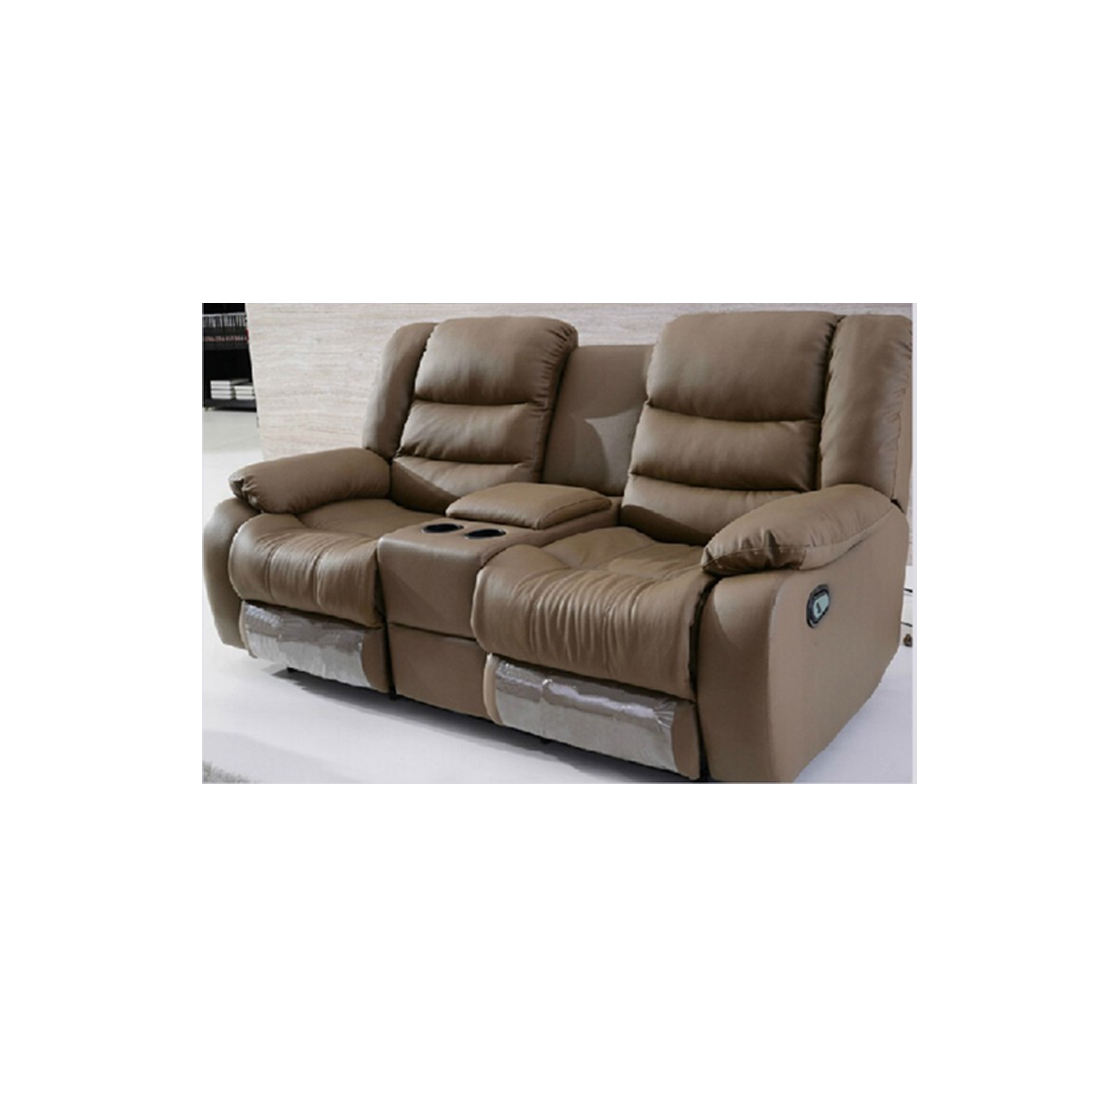 Yamas Recliner Leather Sofa With Cupholders Comfyland